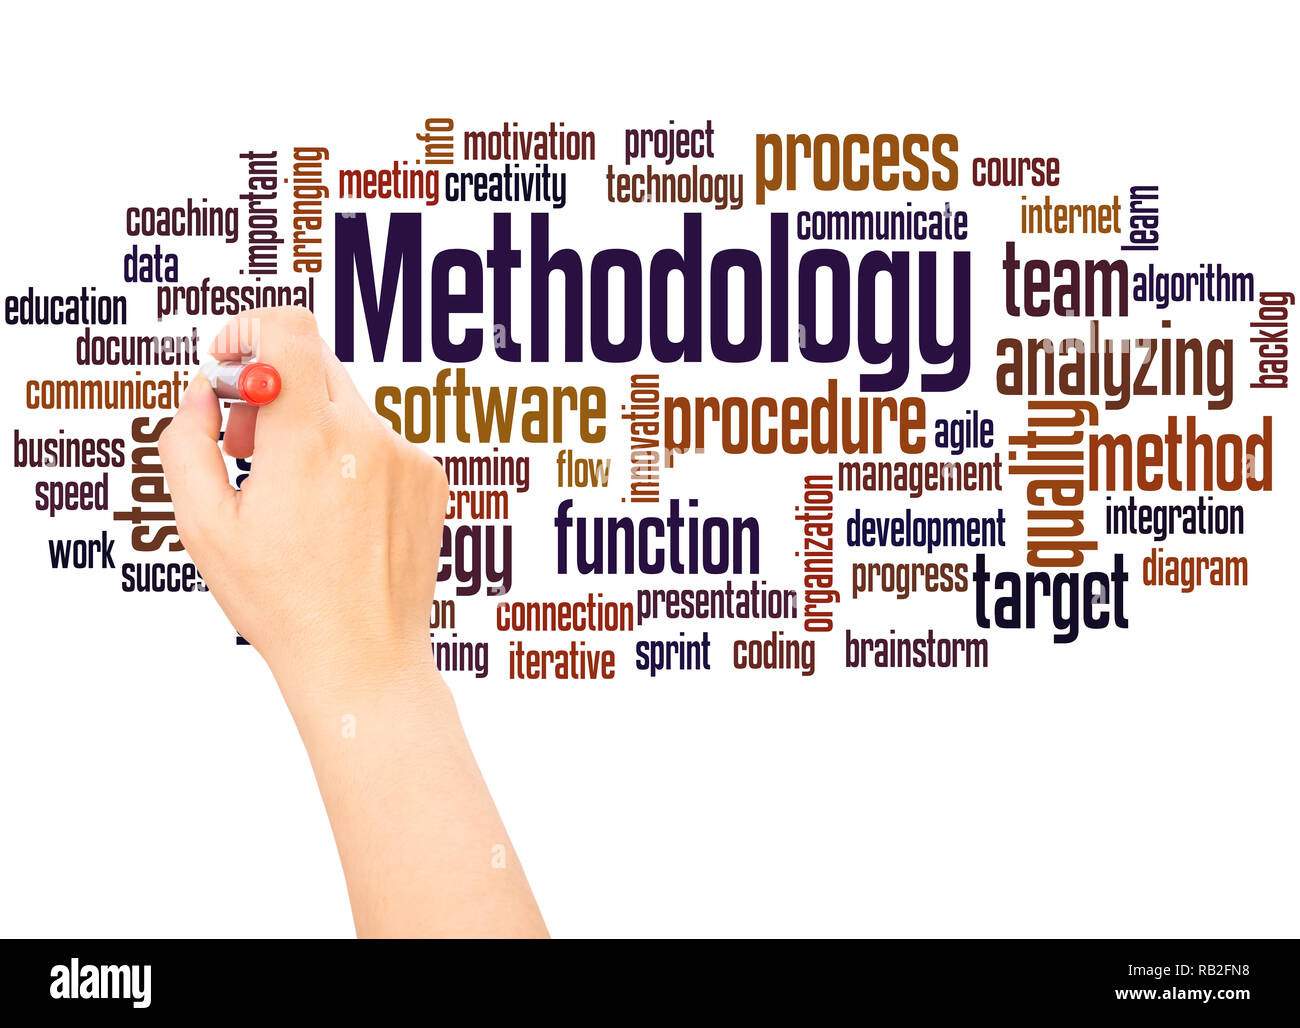 Methodology word cloud hand writing concept on white background. - Stock Image